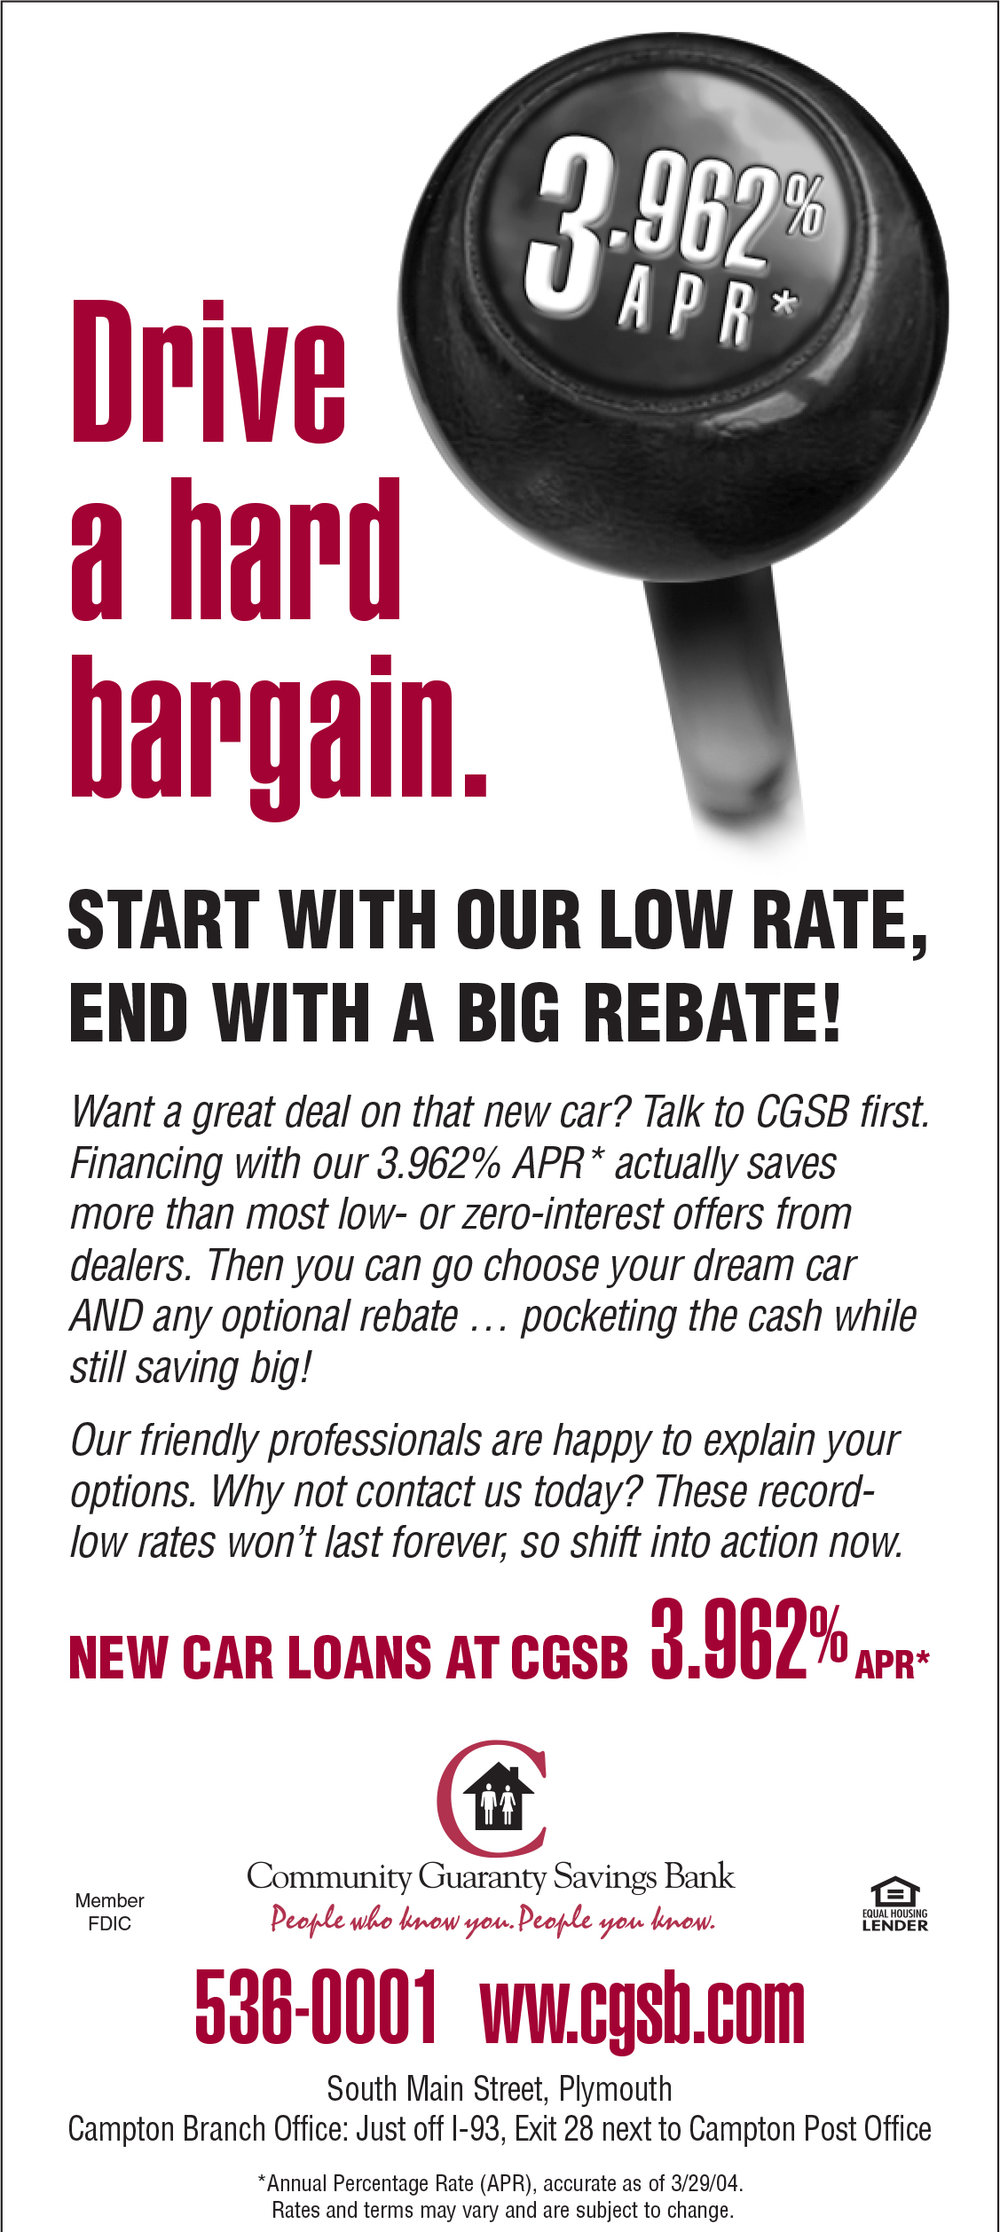 Community Guarantee Savings Bank - Statement Insert